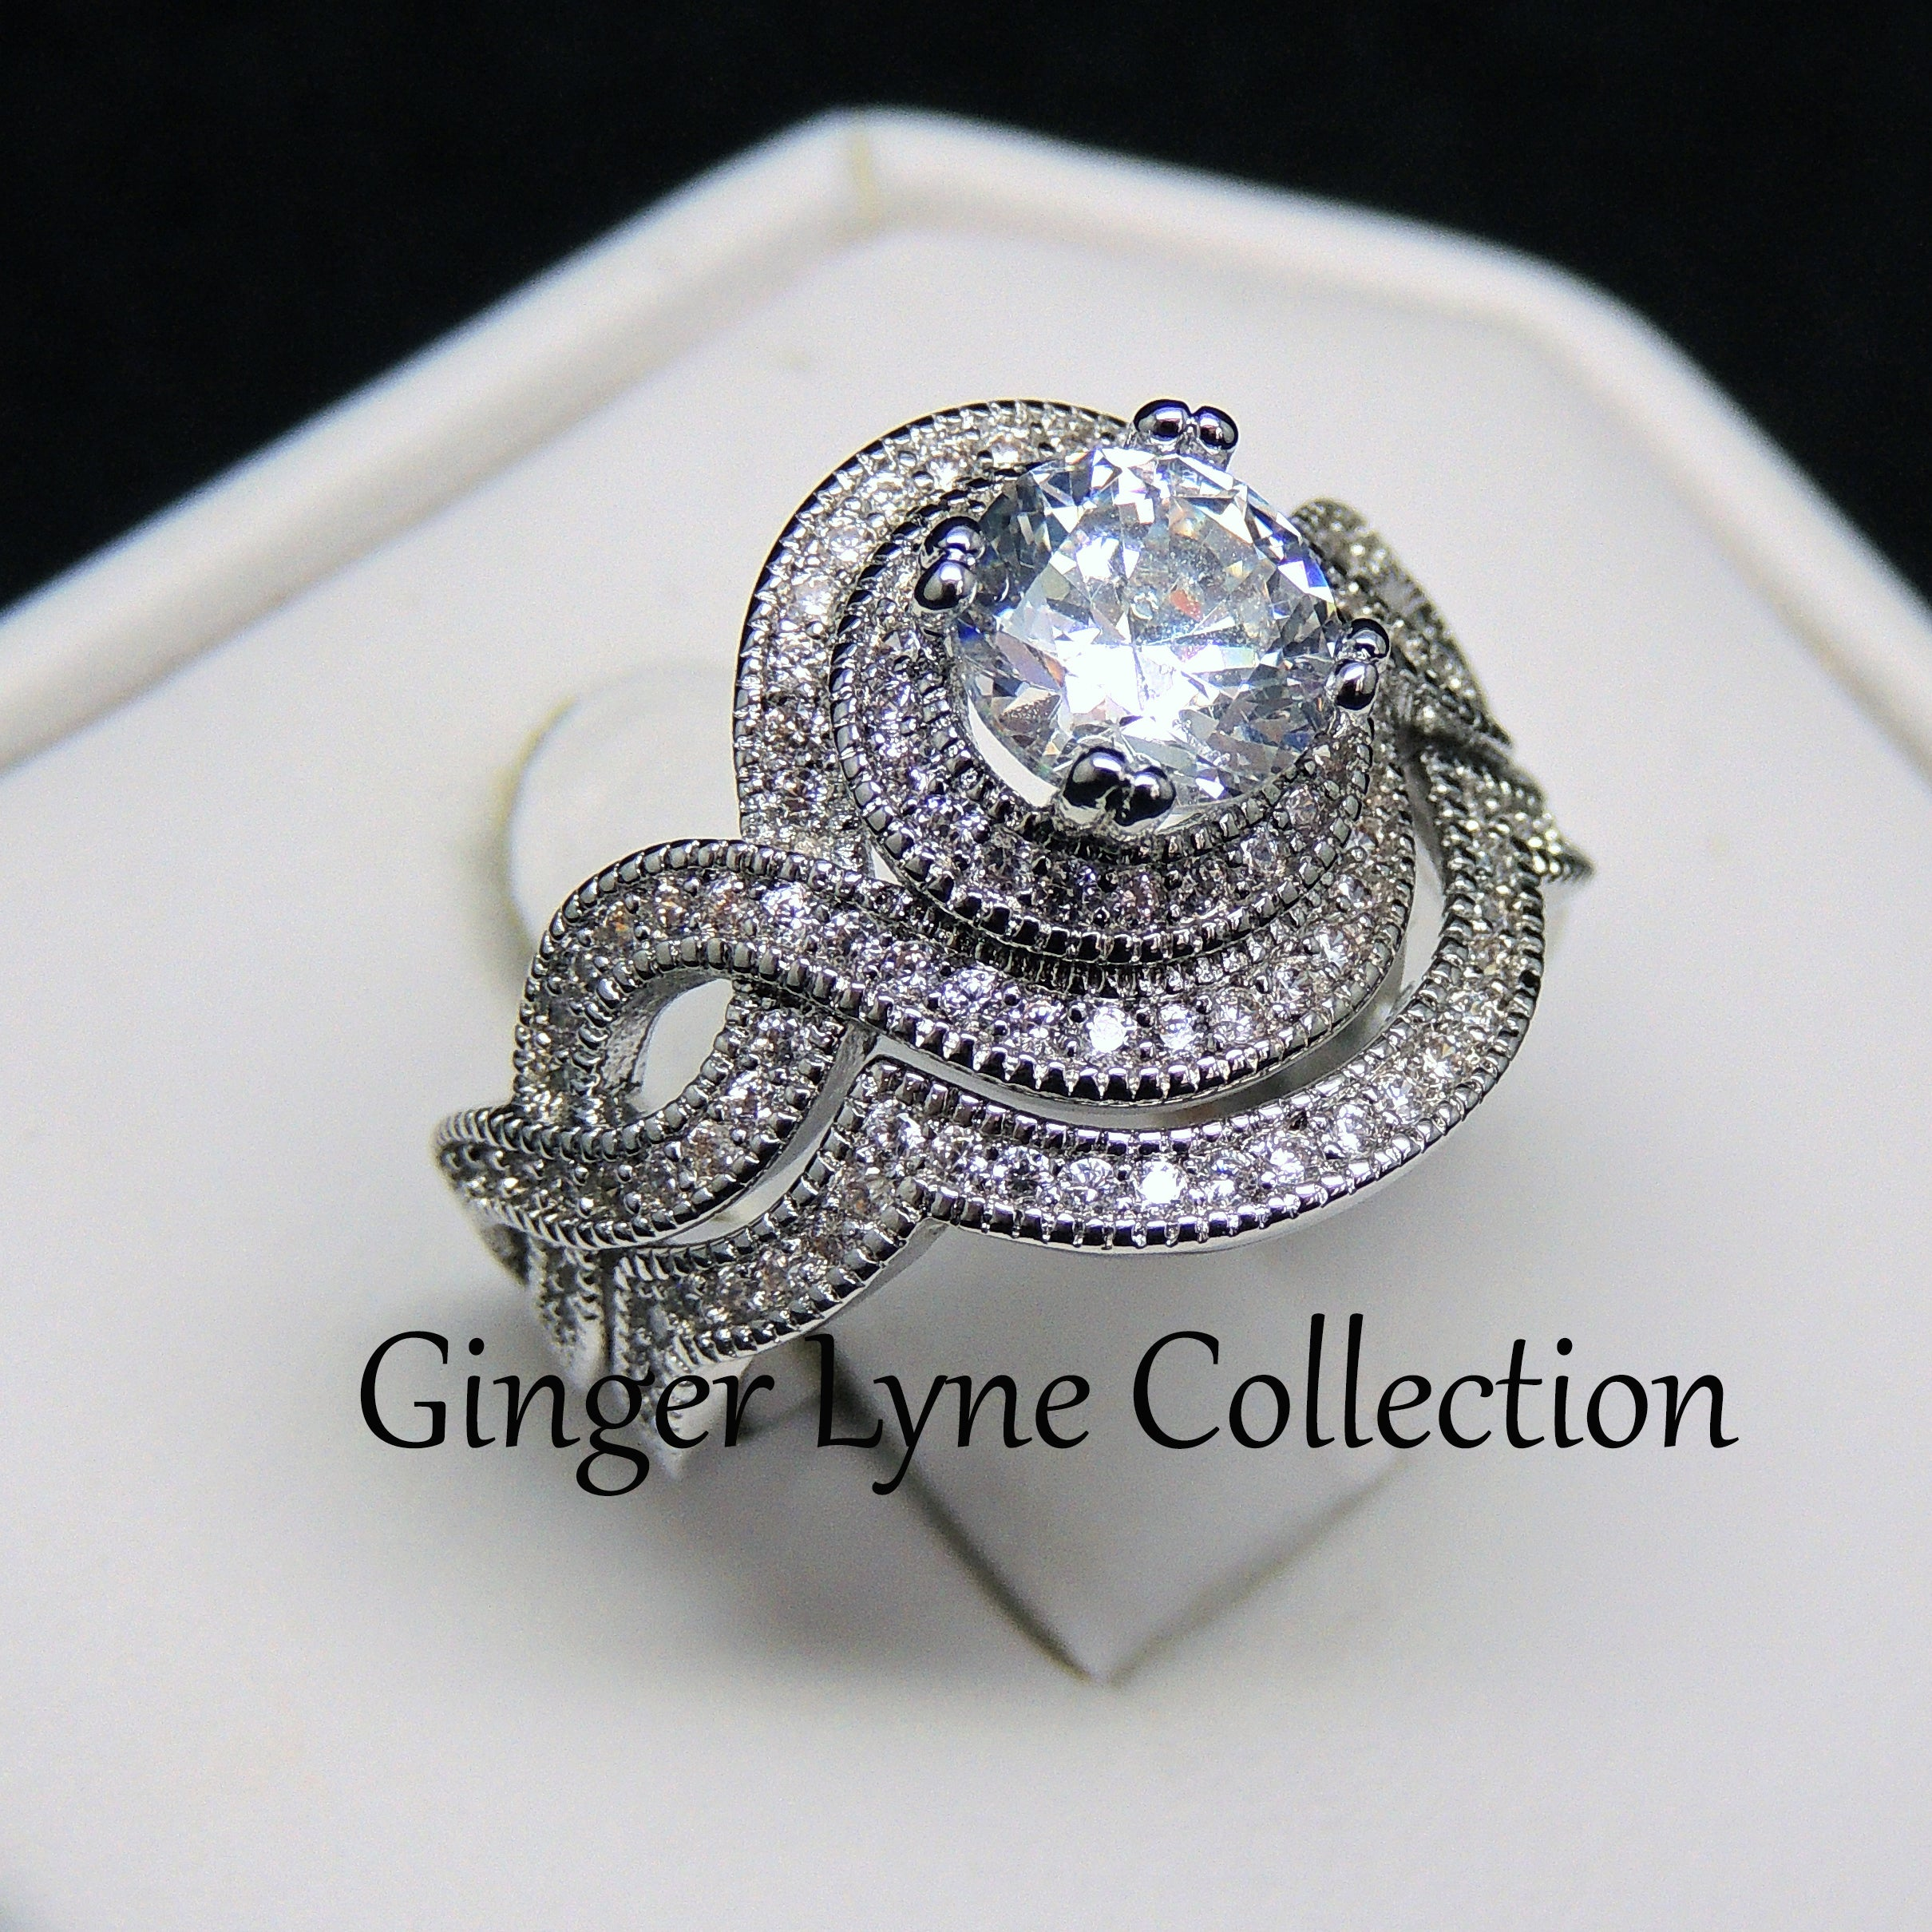 Bobbi Exquisite Halo Pave Wedding Ring Set - Ginger Lyne Collection